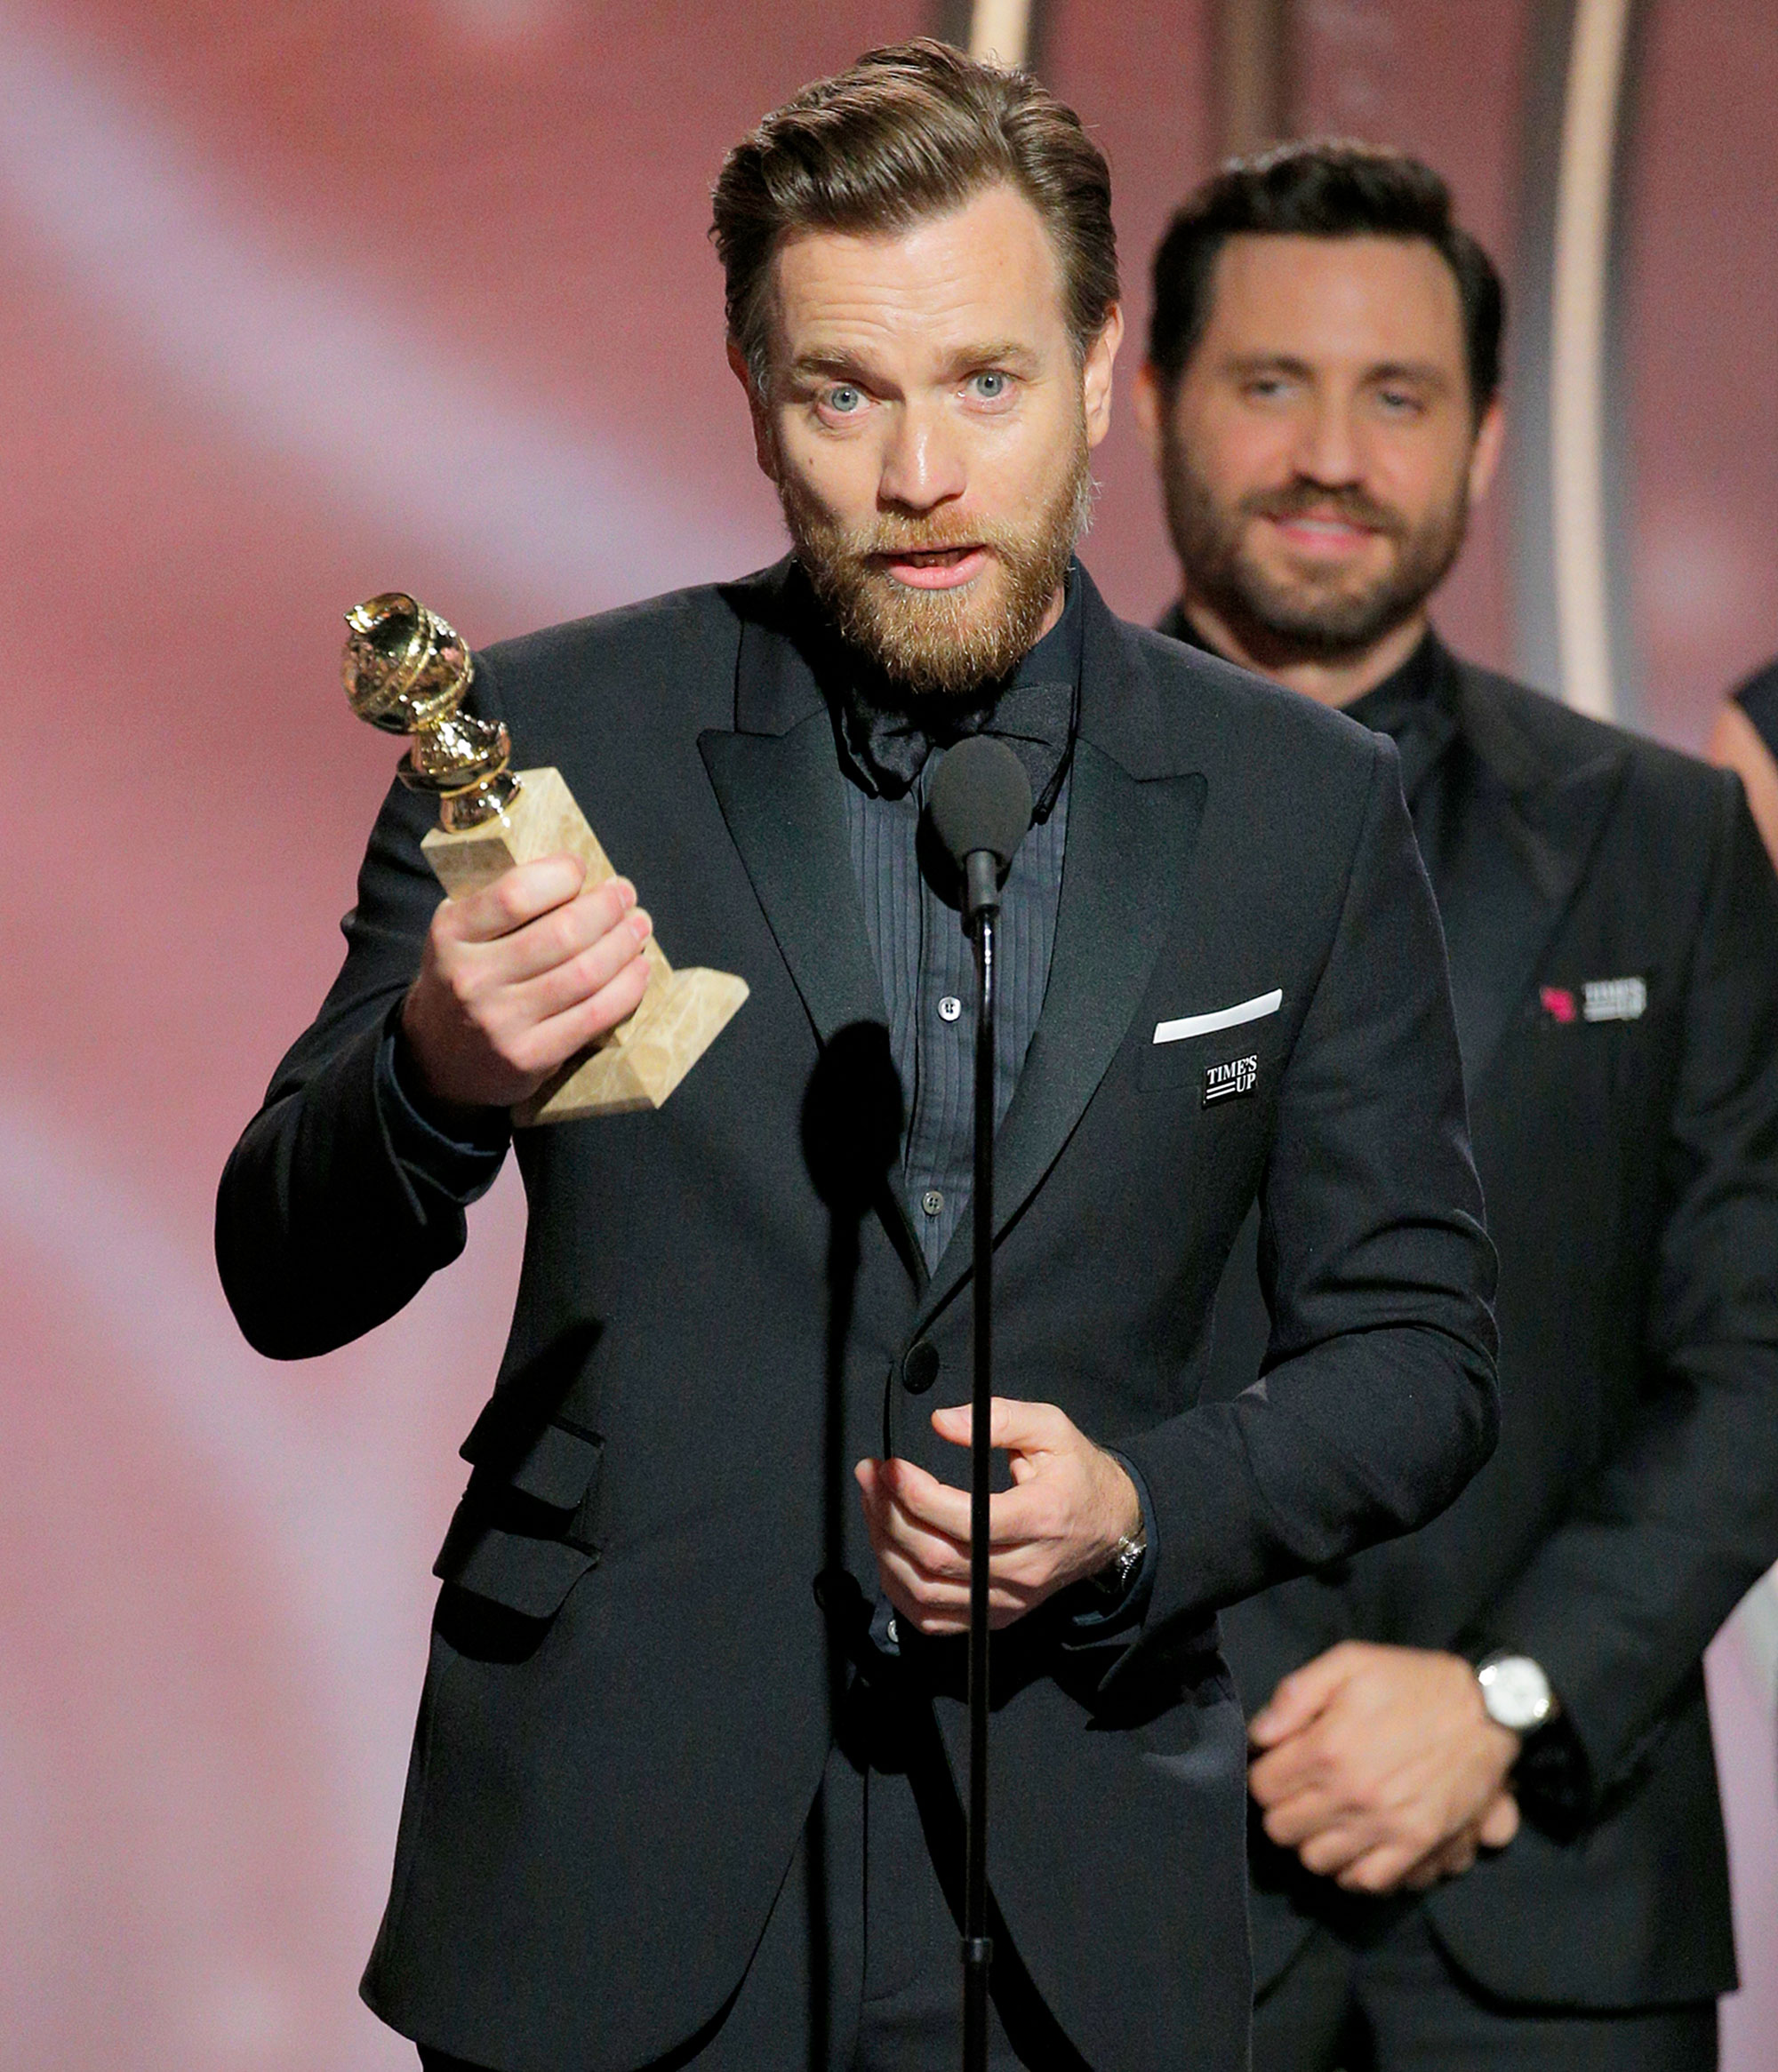 Ewan Mcgregor thanks wife and rumoured girlfriend after Golden Globes win